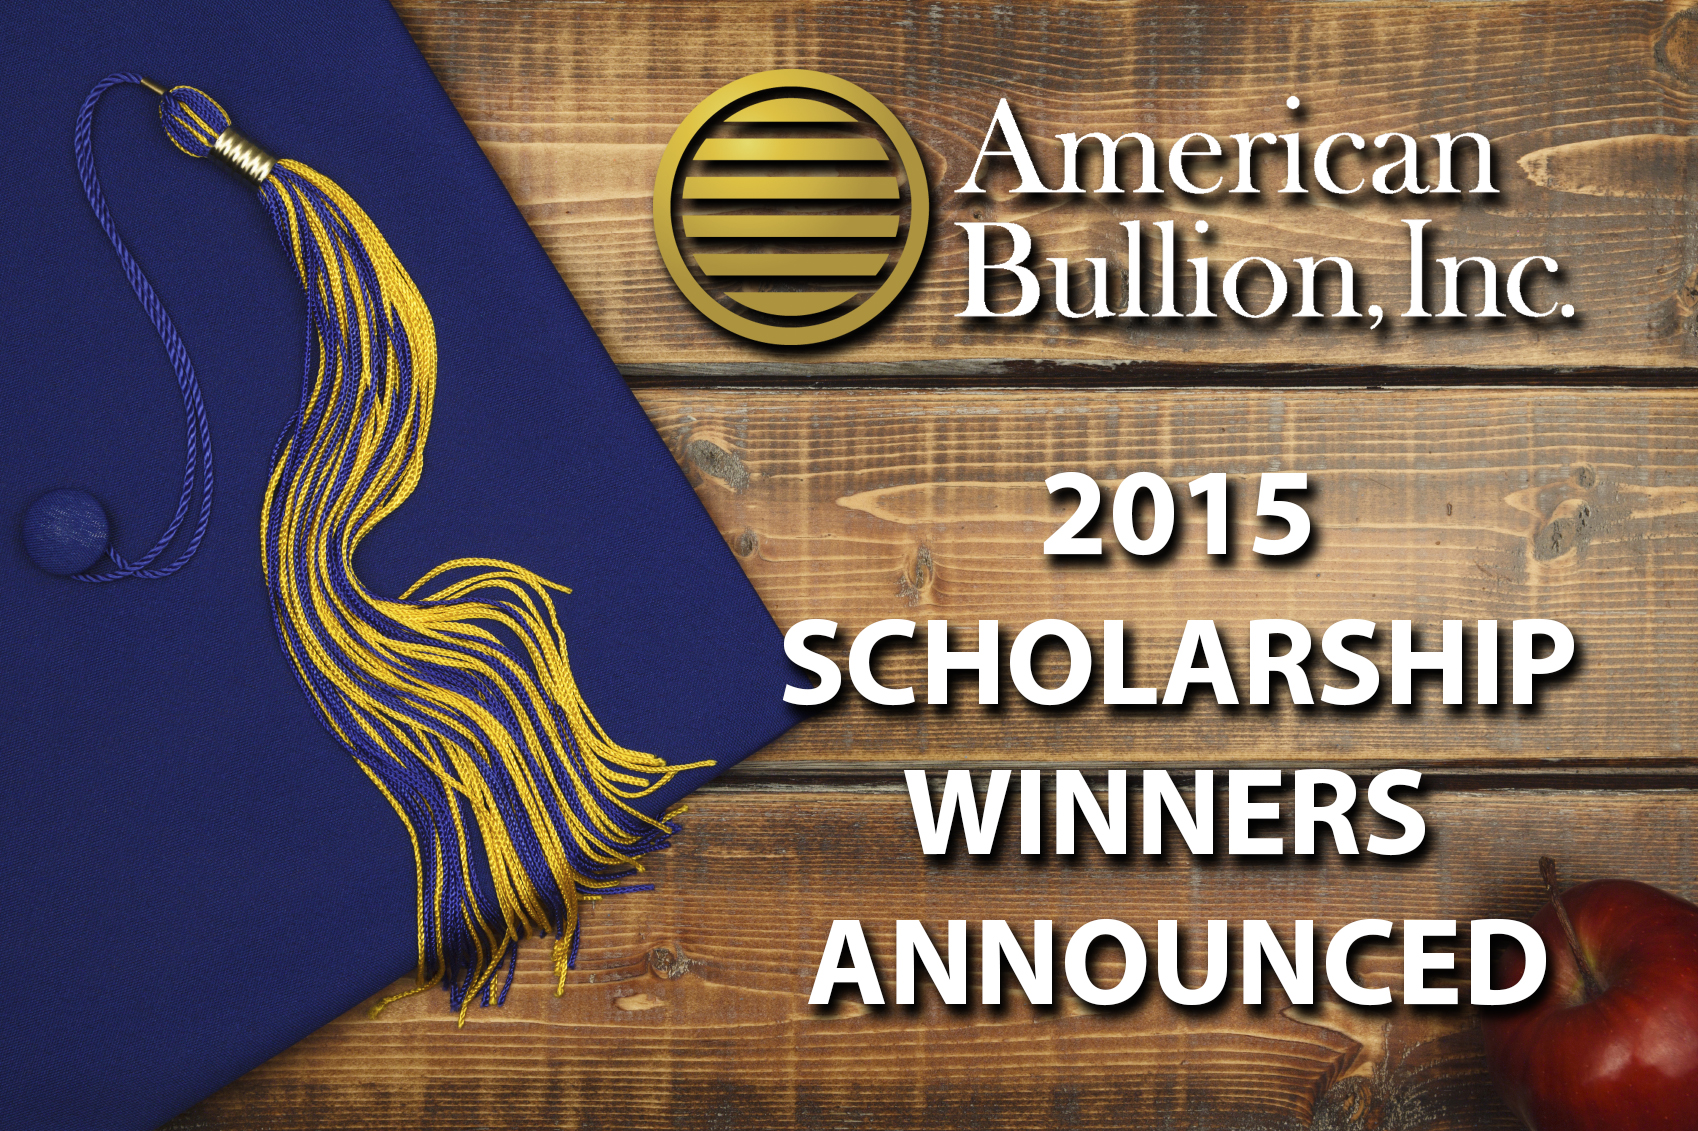 easy and quick no essay scholarships image 100 easy and quick no essay scholarships 2015 annual american bullion scholarship winners announced